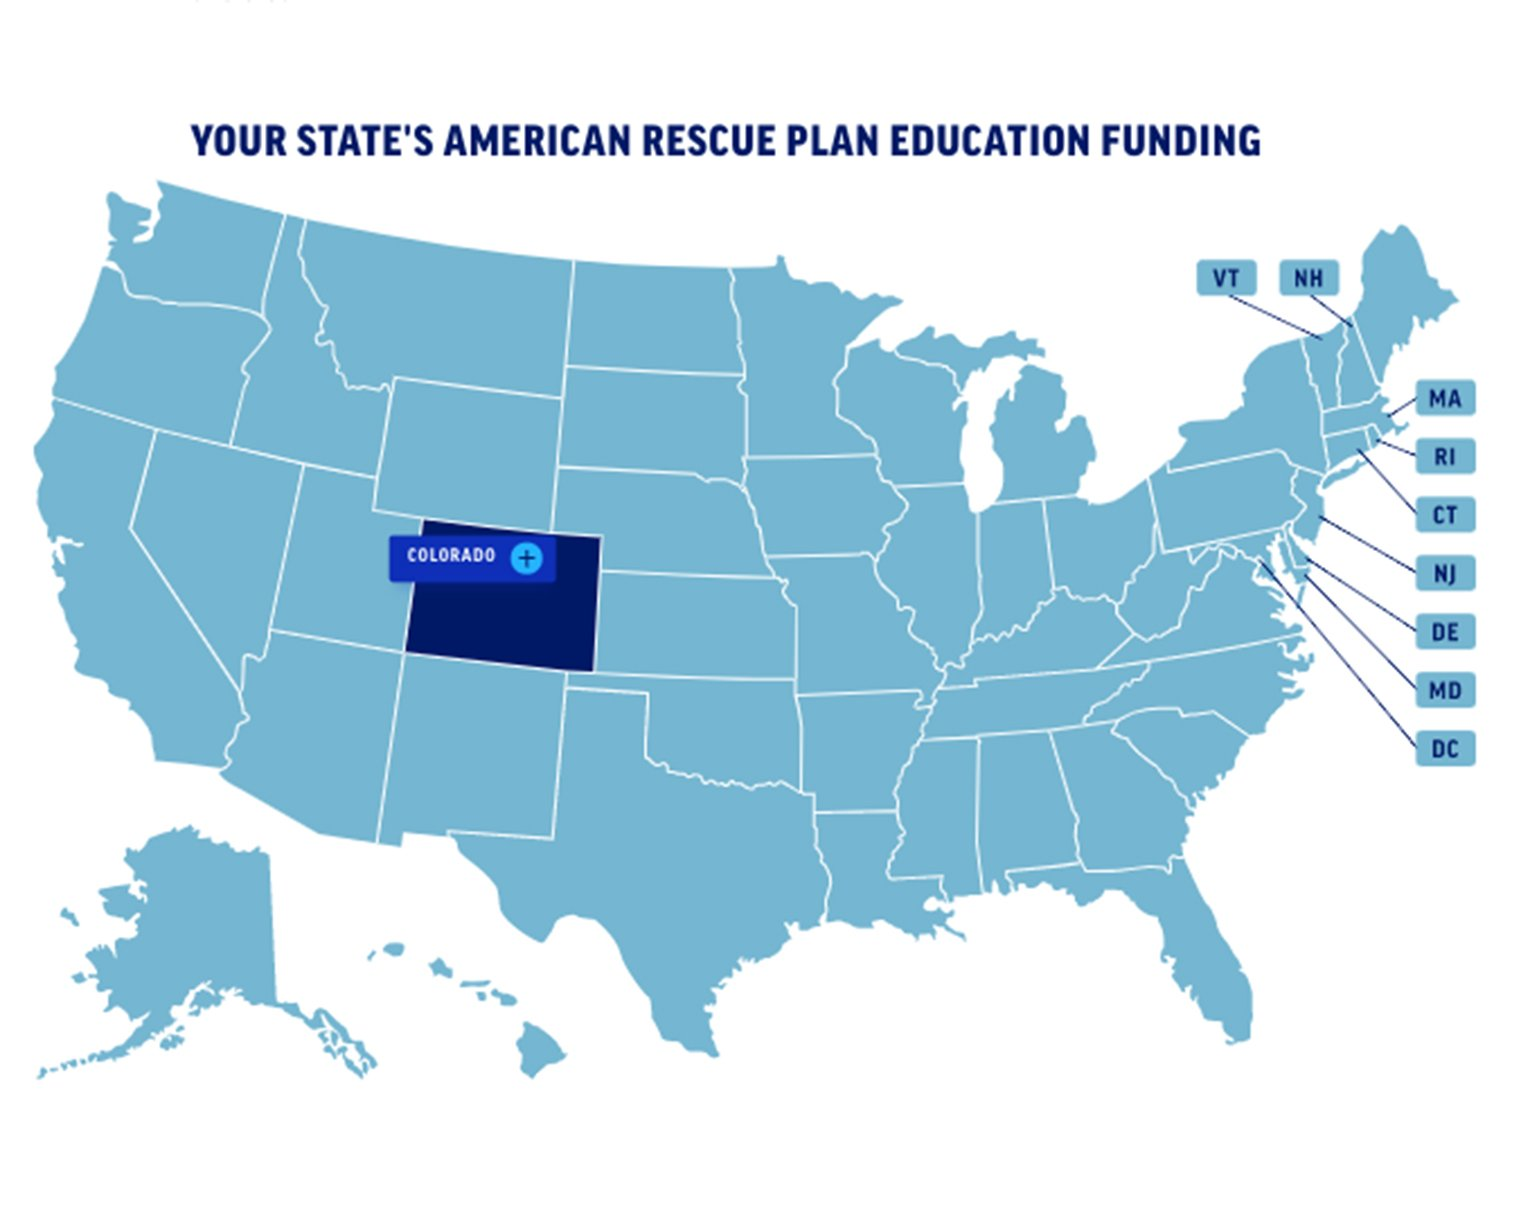 American Rescue Plan funding by state map